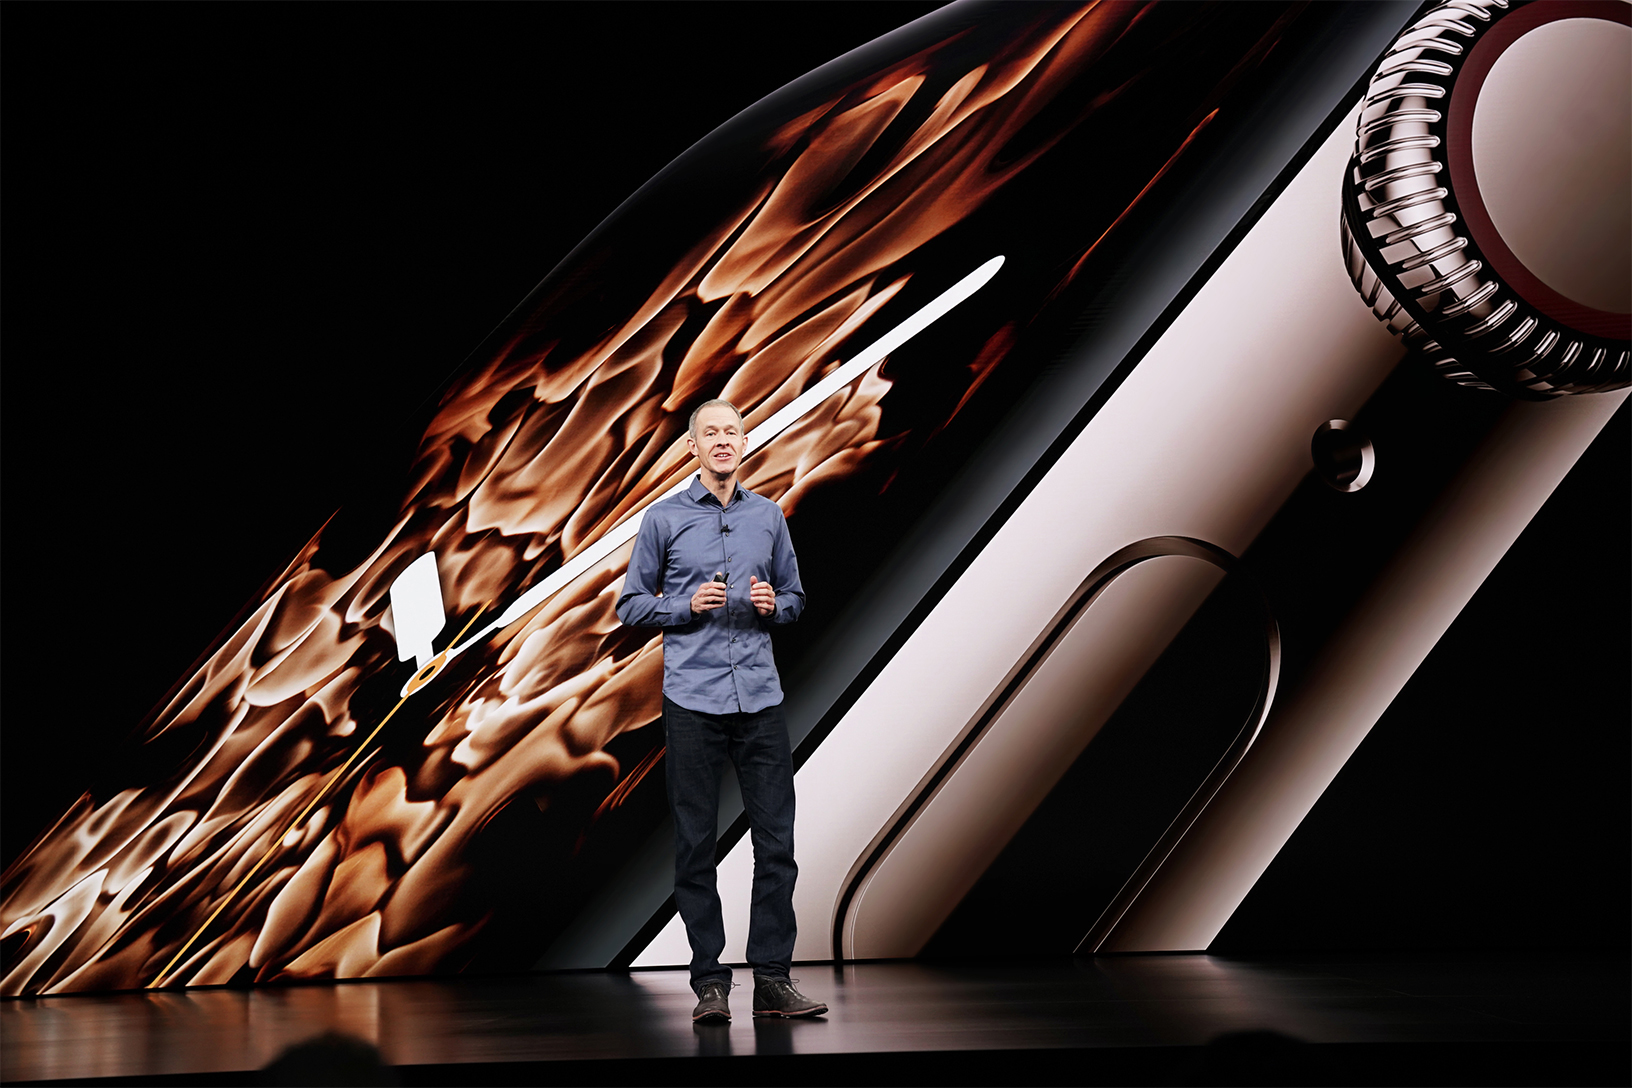 Jeff Williams präsentiert die Apple Watch Series 4, Hack4Life, Fabian Geissler